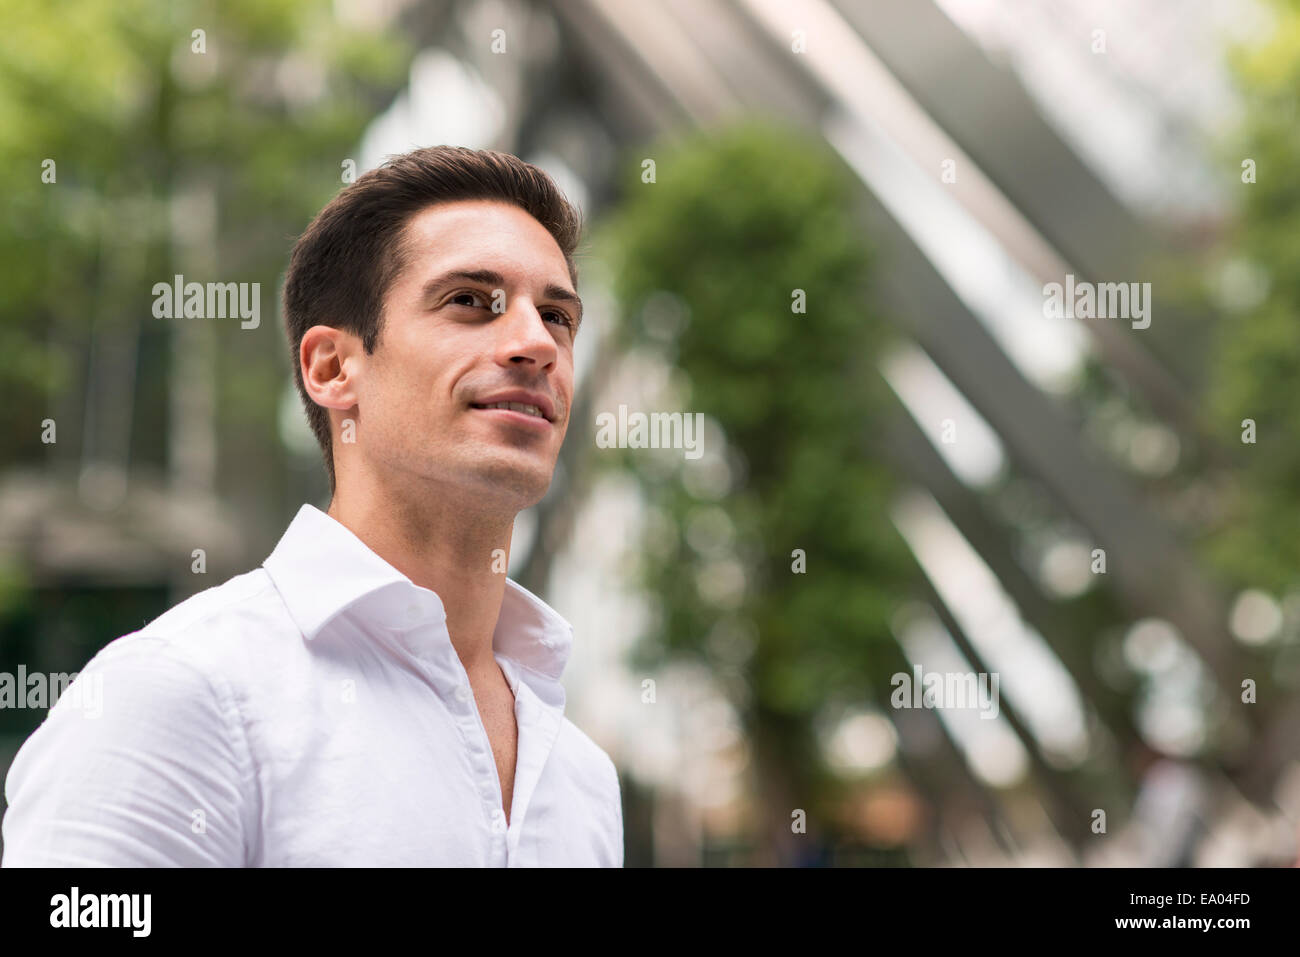 Young confident businessman at Broadgate Tower, London, UK - Stock Image